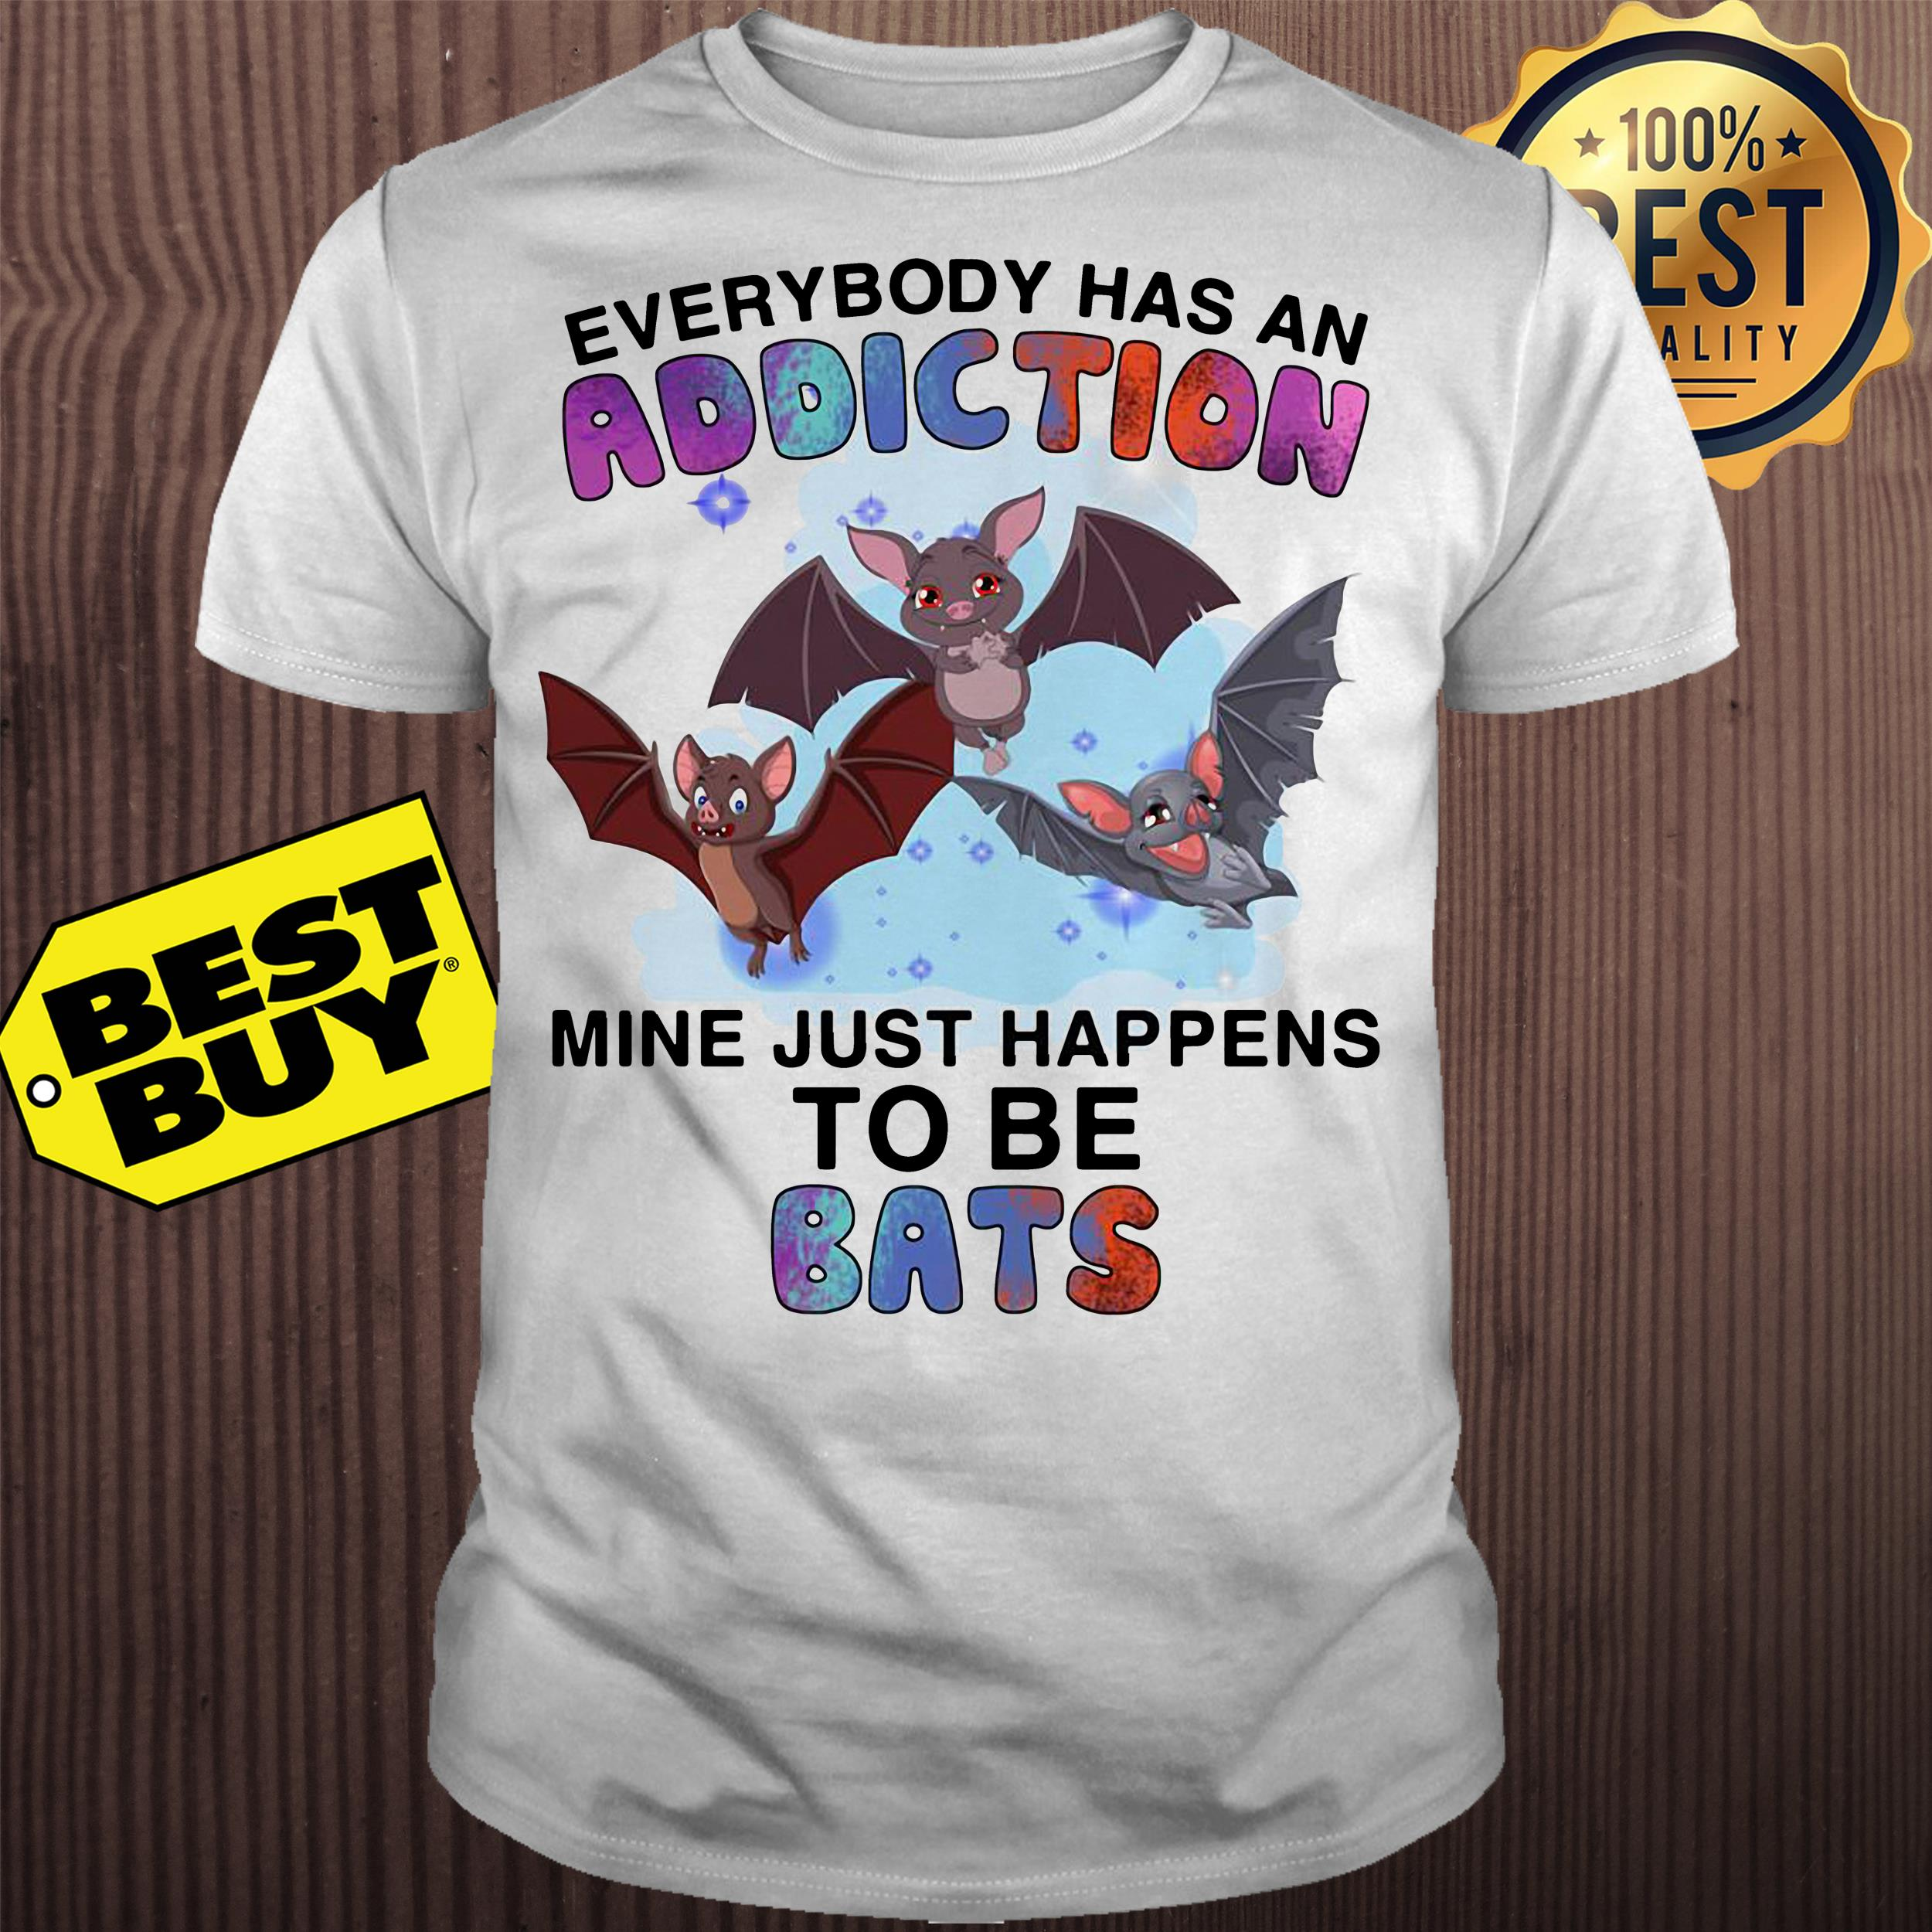 Everybody has an addiction mine just happens to be bats shirt